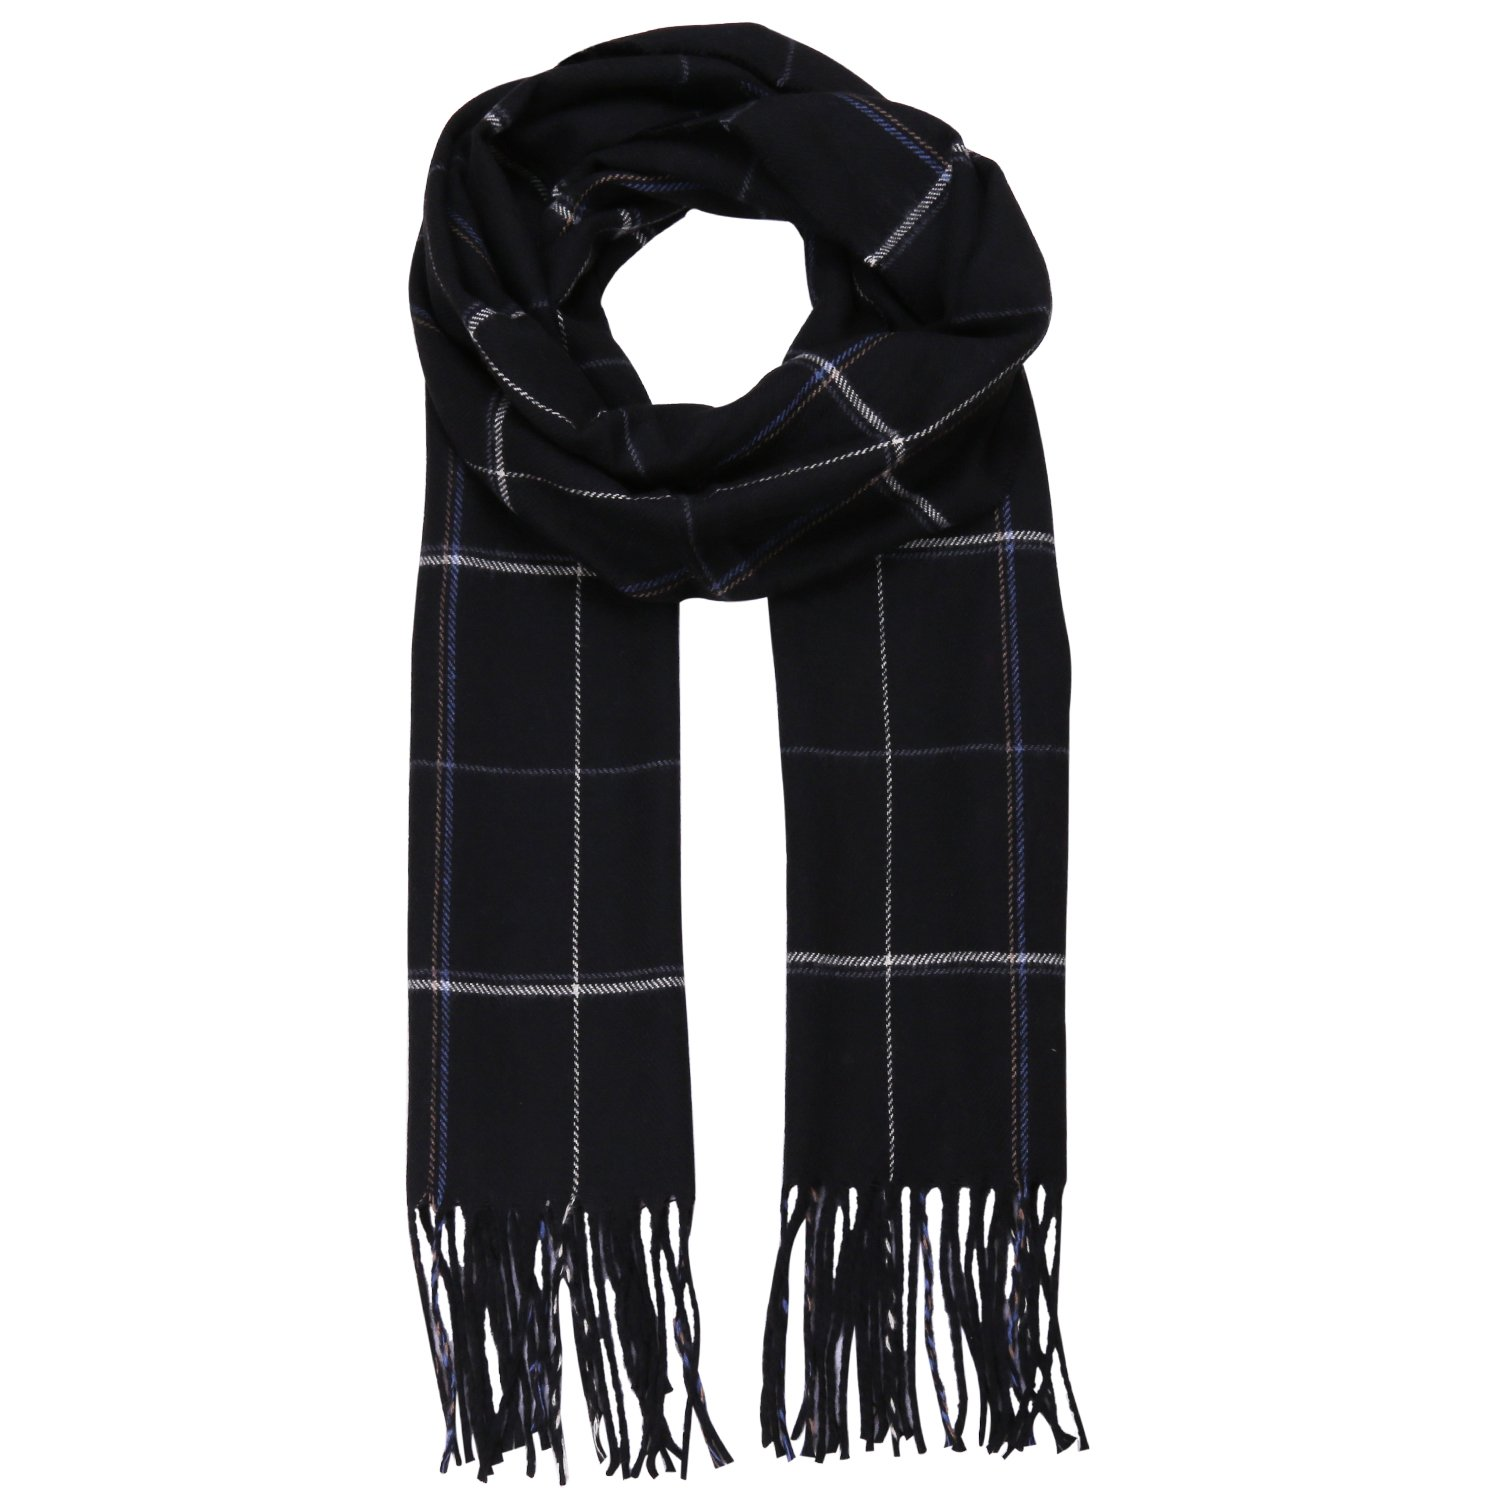 SOJOS Classic Plaid Tartan Cashmere Scarves with Tassels for Men and Women SC310 With Pink Plaid SC310C8